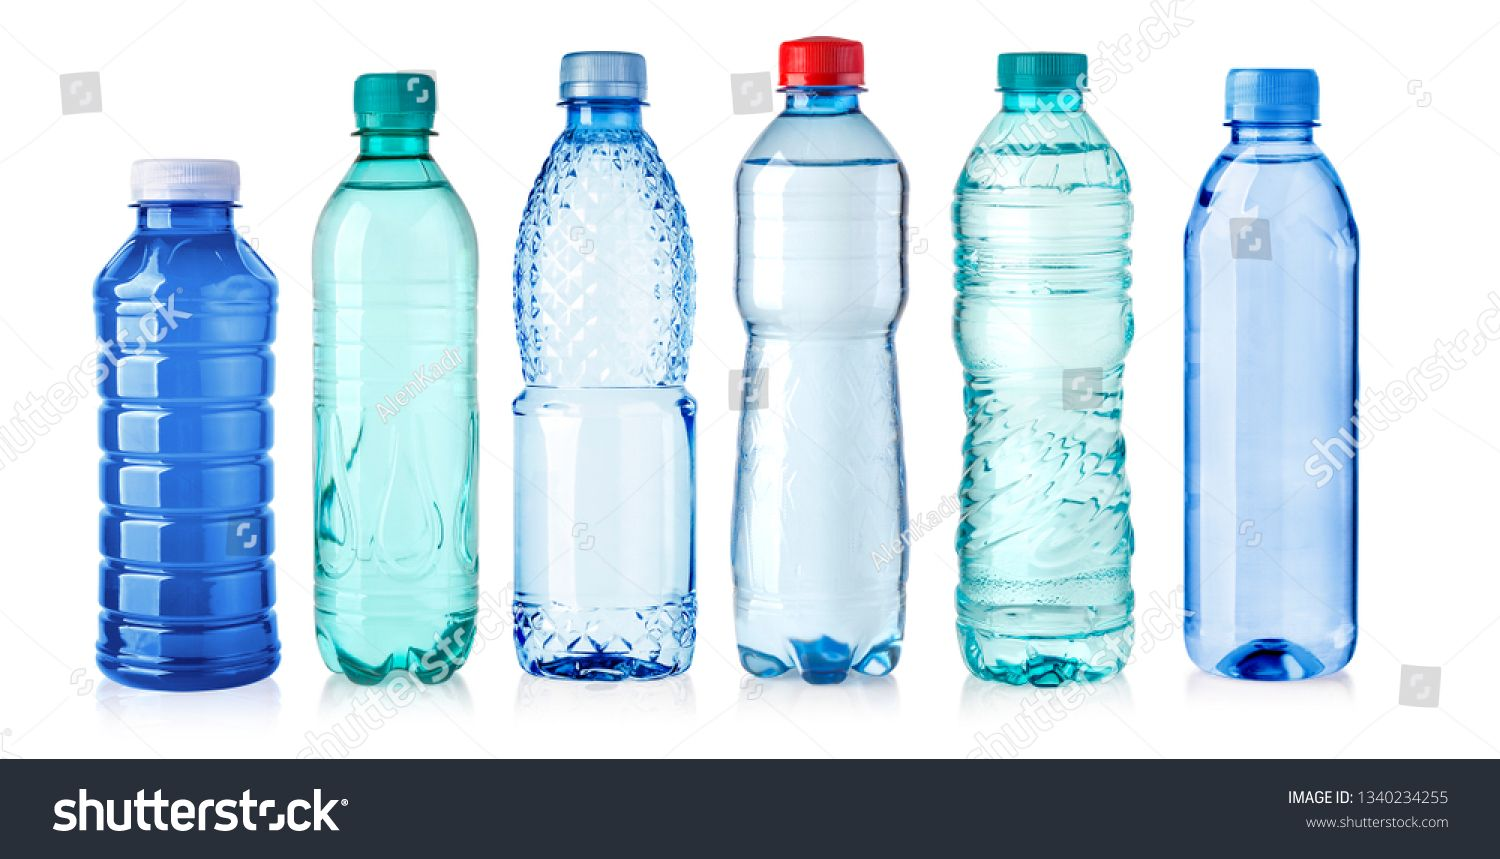 Plastic Bottle Of Water Isolated On A White Background Sponsored